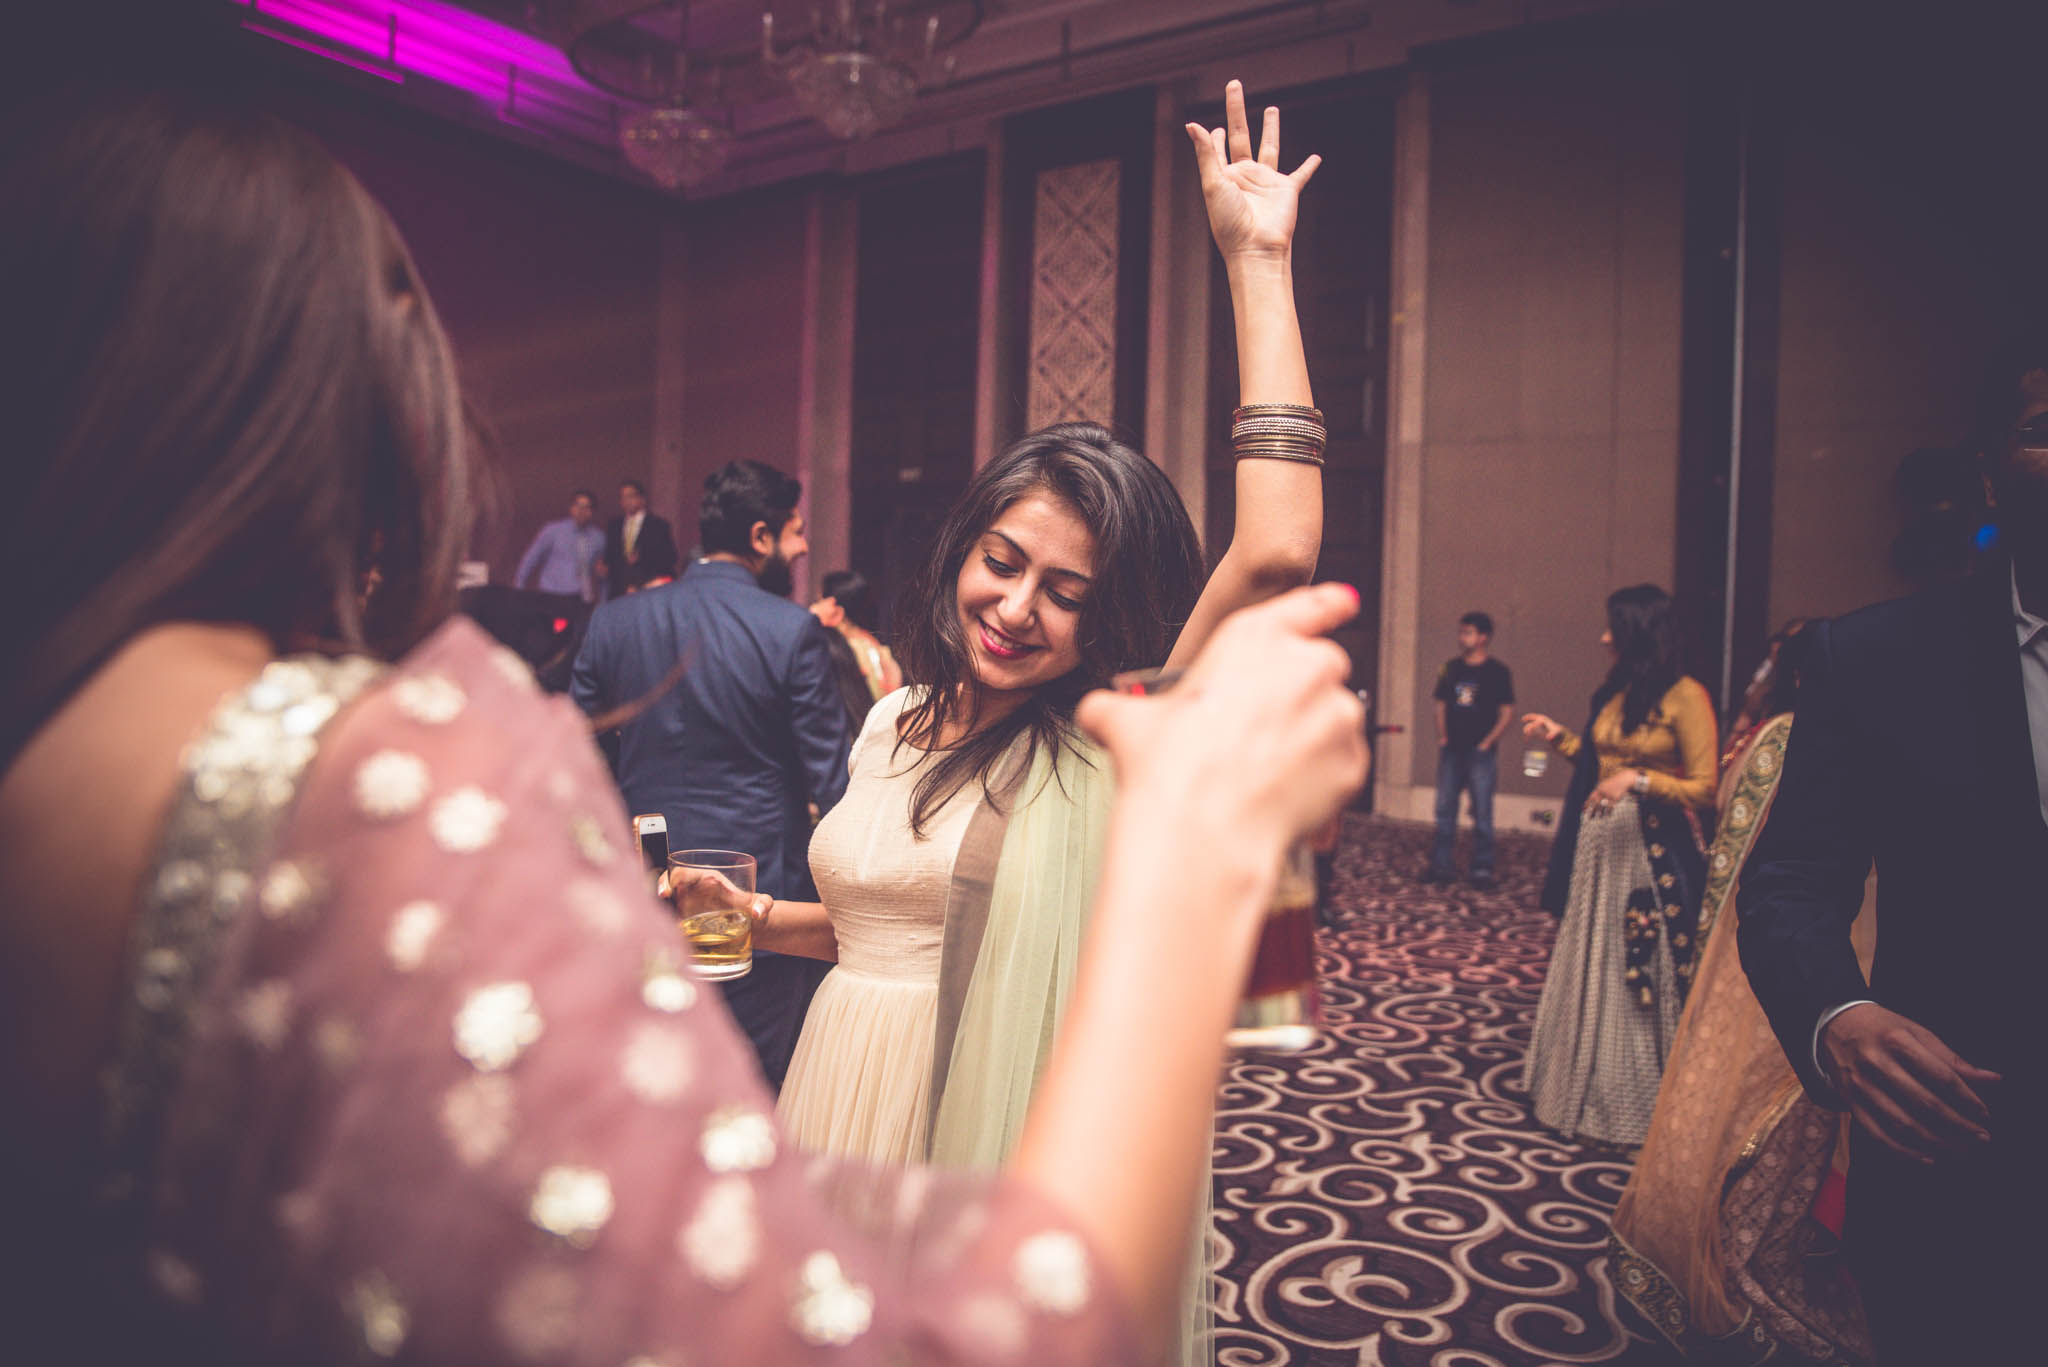 StRegis-Palladium-Mumbai-Candid-Wedding-Photography-79